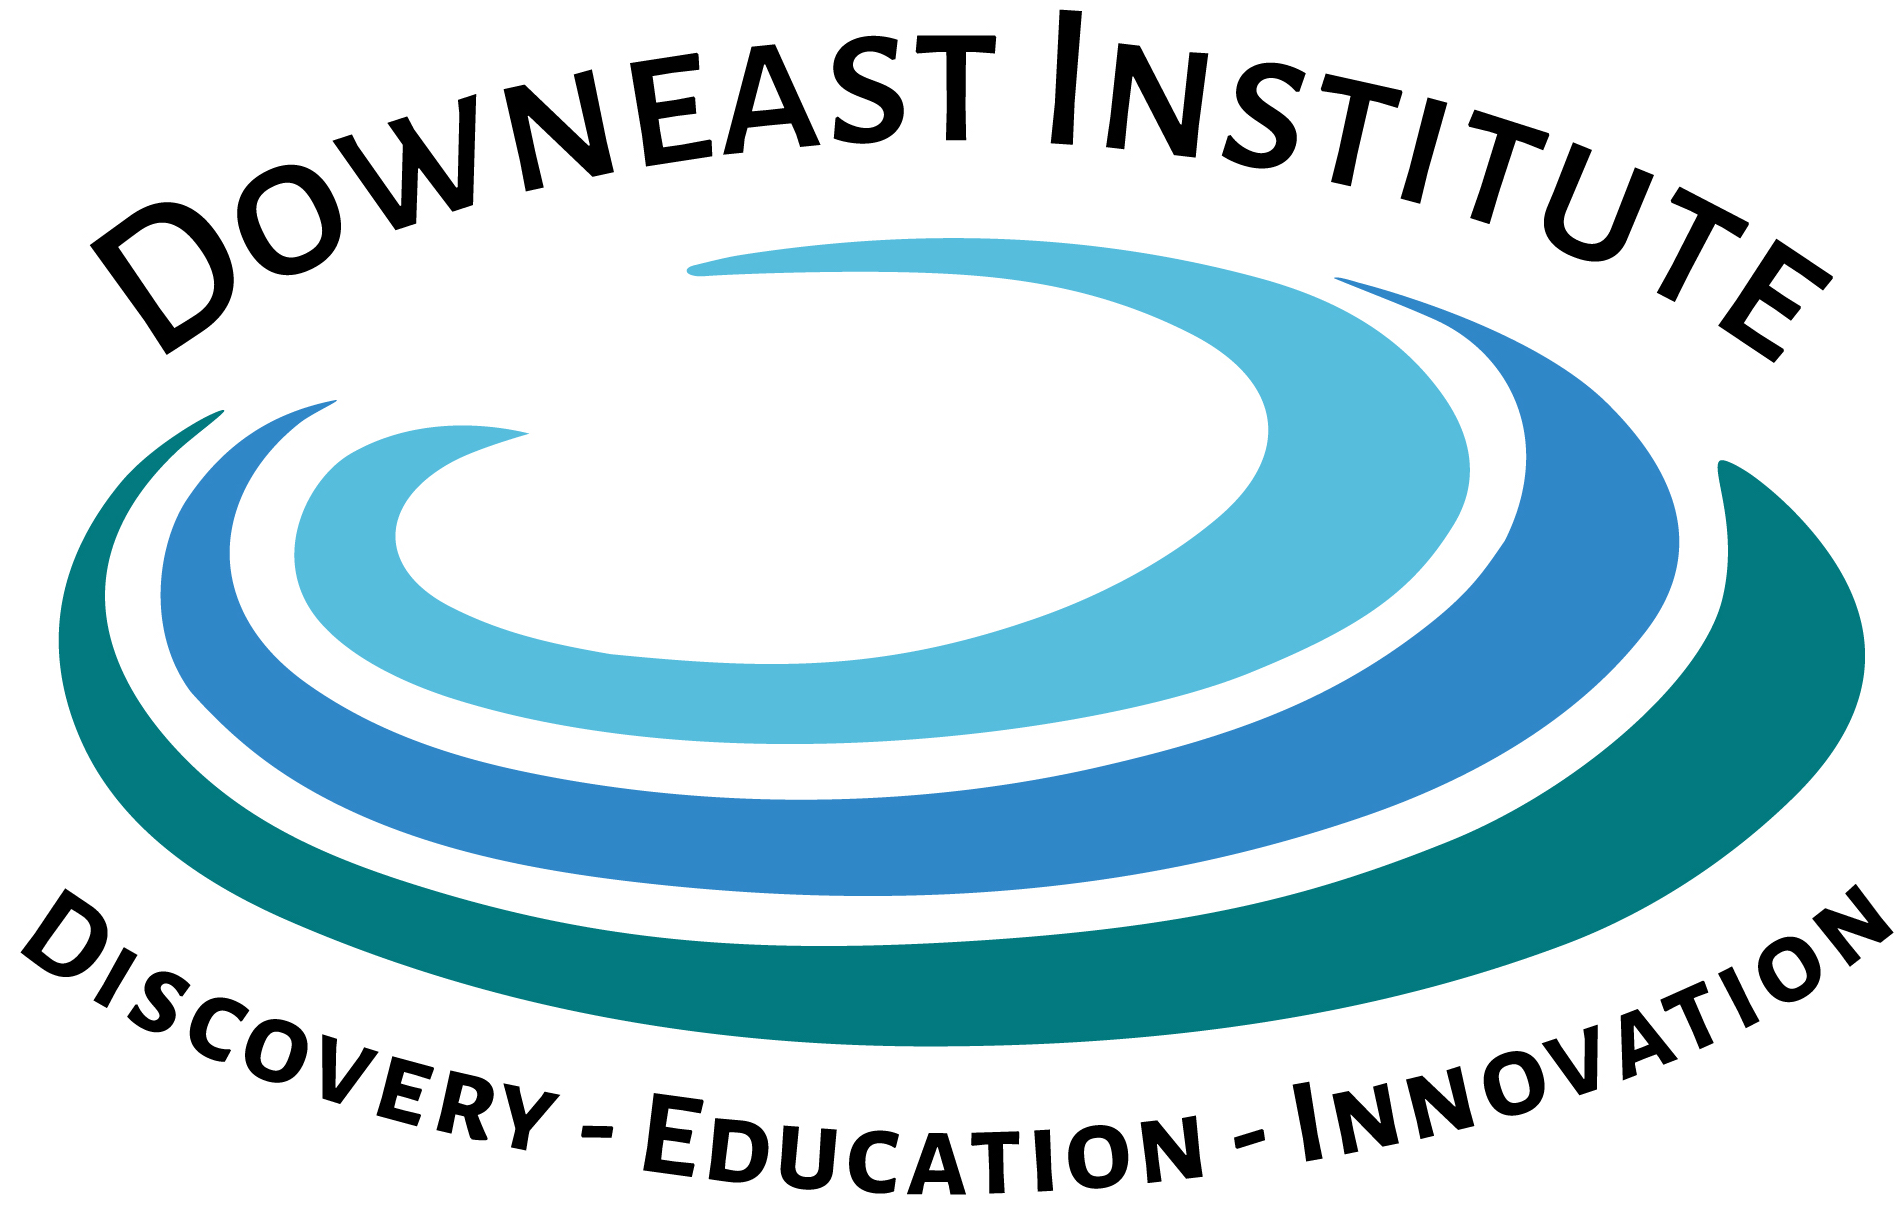 Downeast Institute